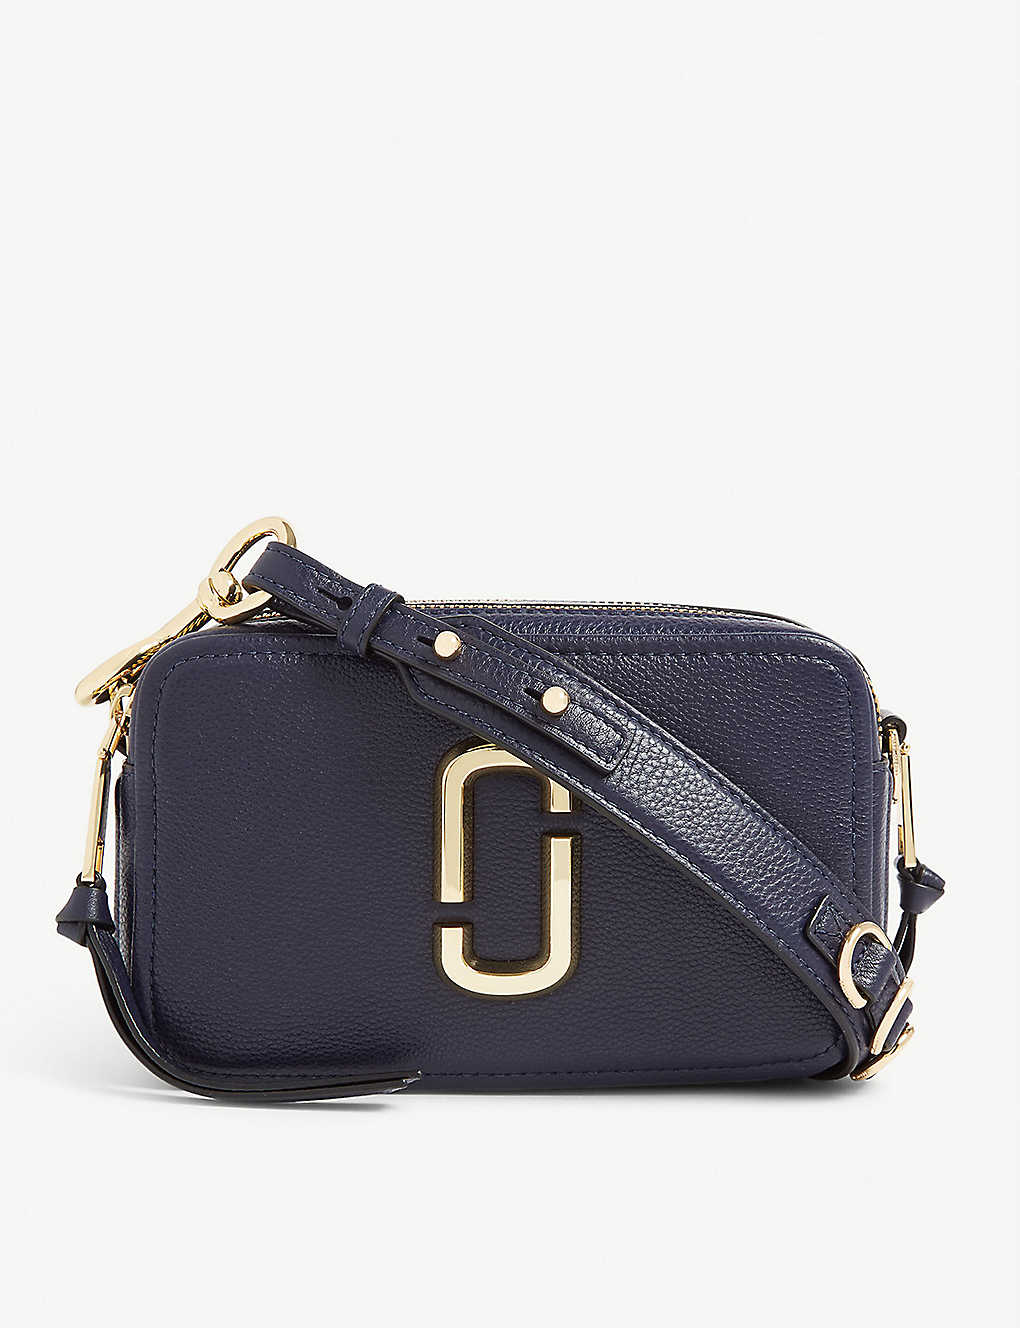 MARC JACOBS: Softshot 21 grained leather cross-body bag